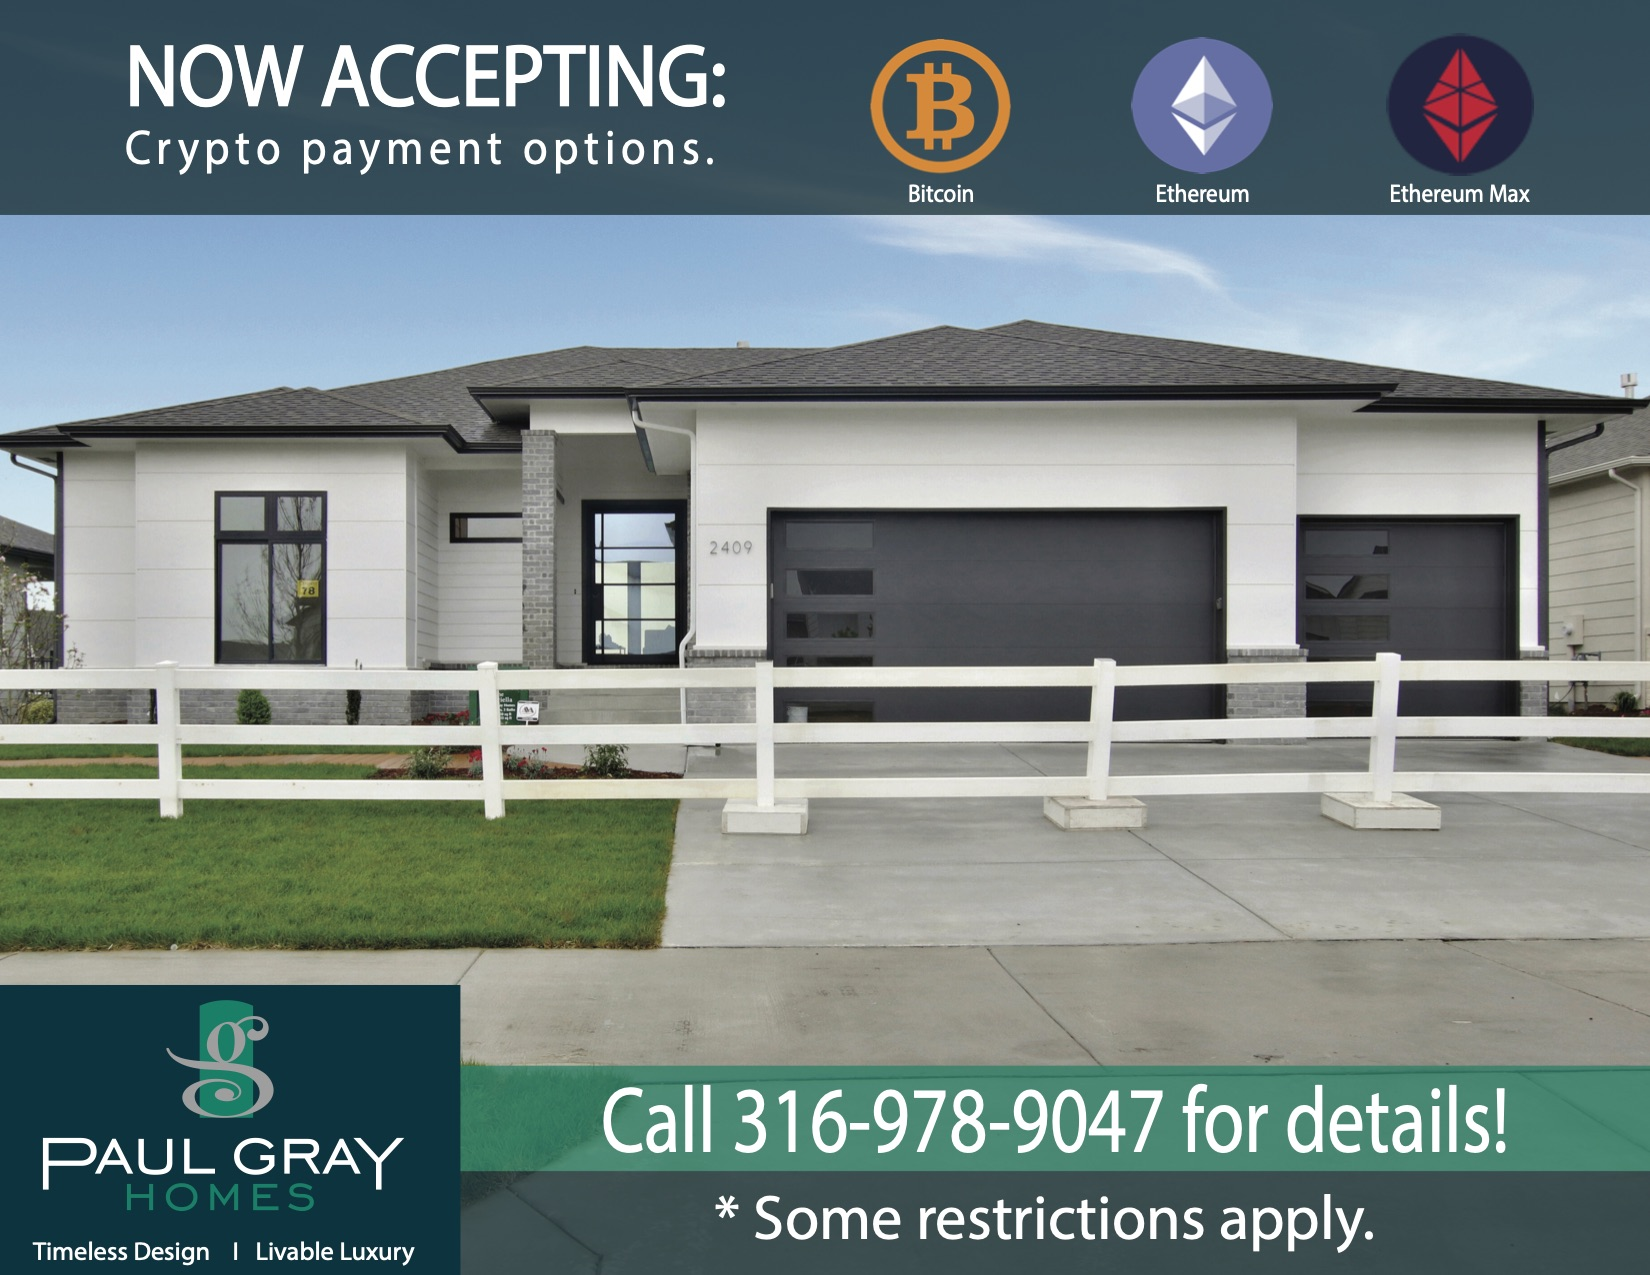 Paul Gray Homes now offers Cryptocurrency payment options